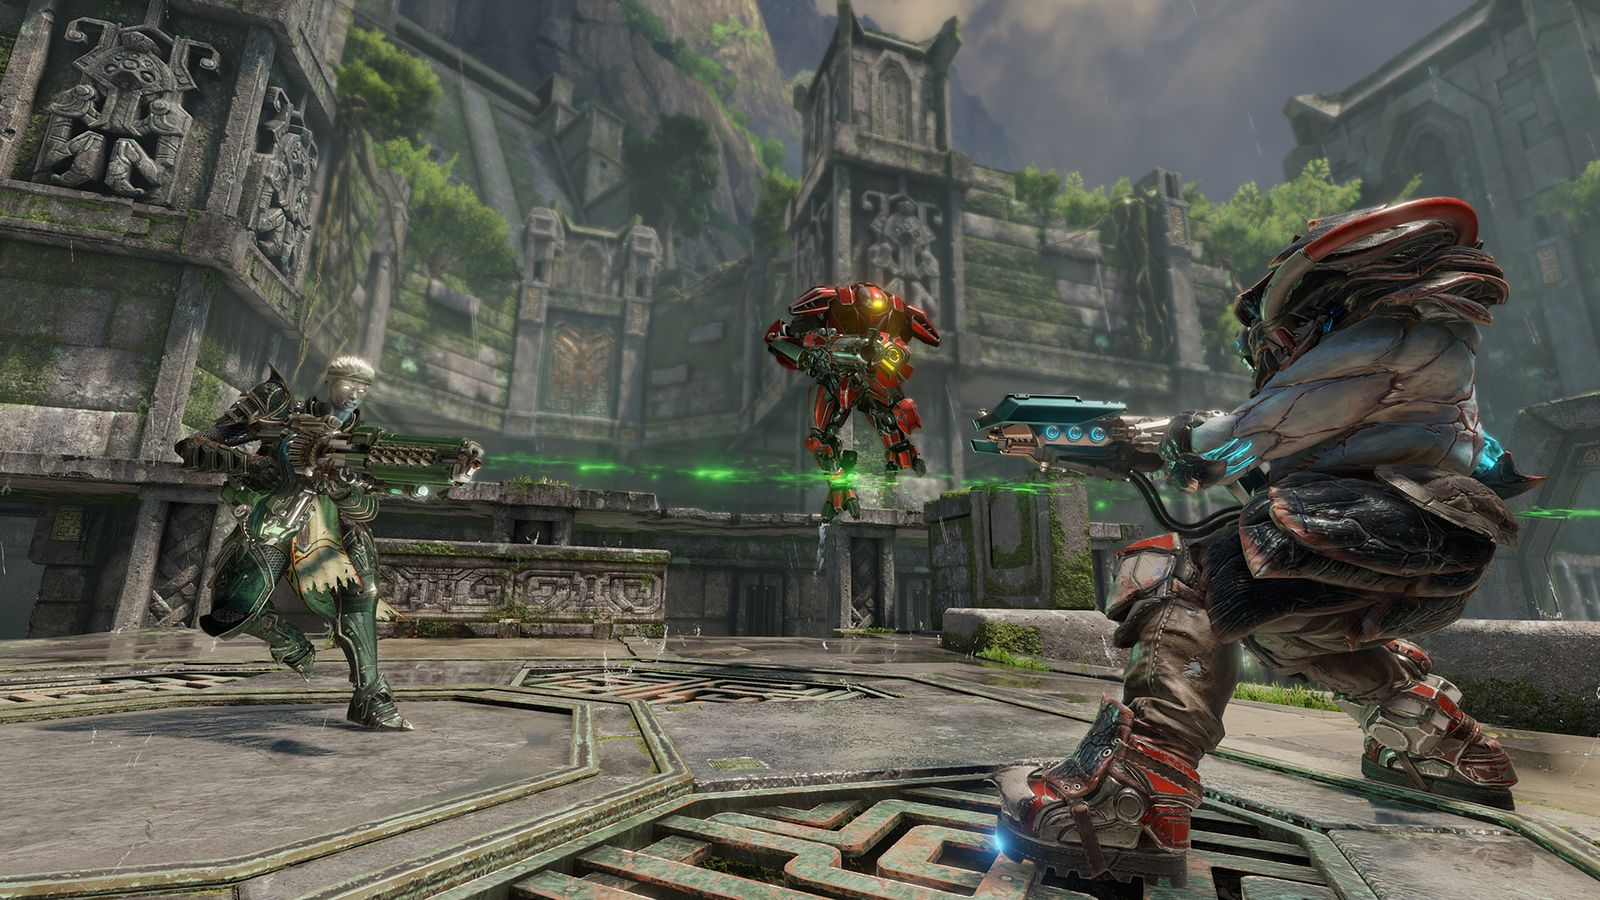 Quake champions beta access key